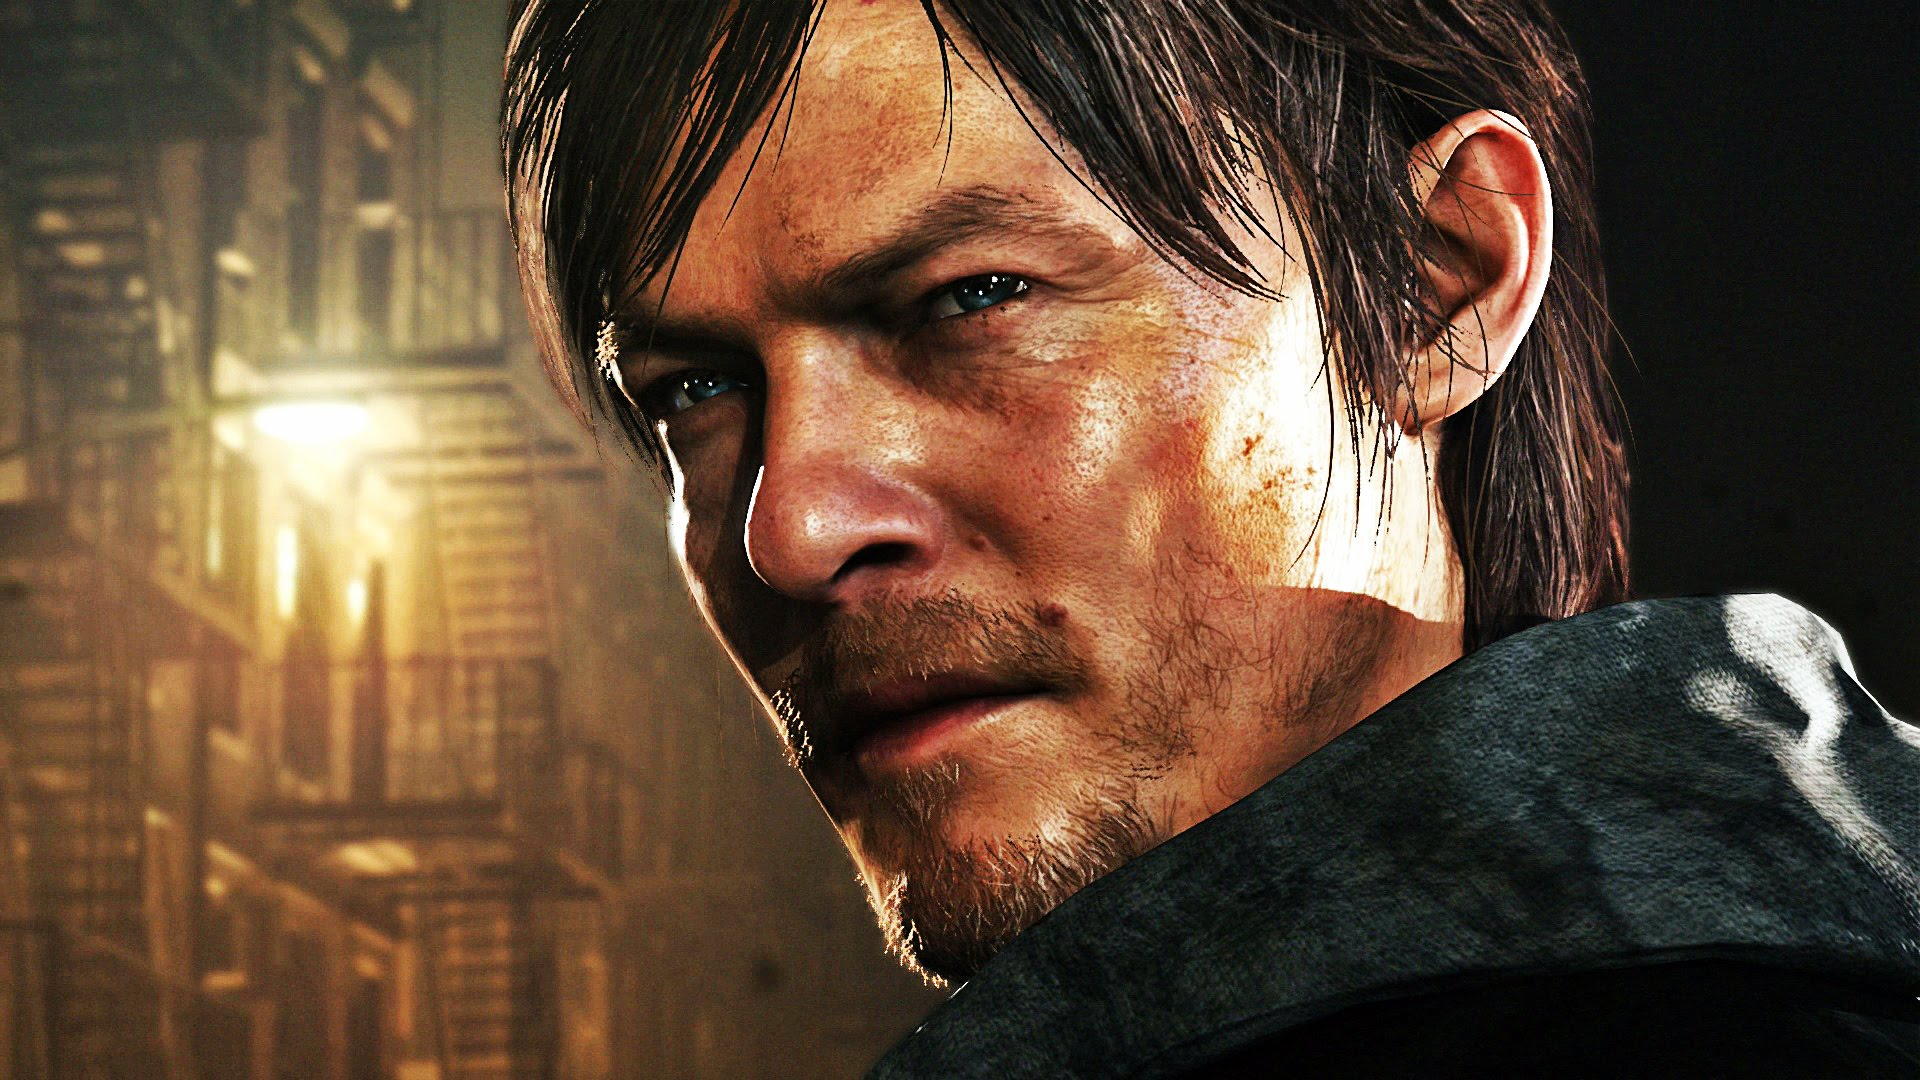 Konami Erasing Silent Hills Playable Teaser is Bad Form